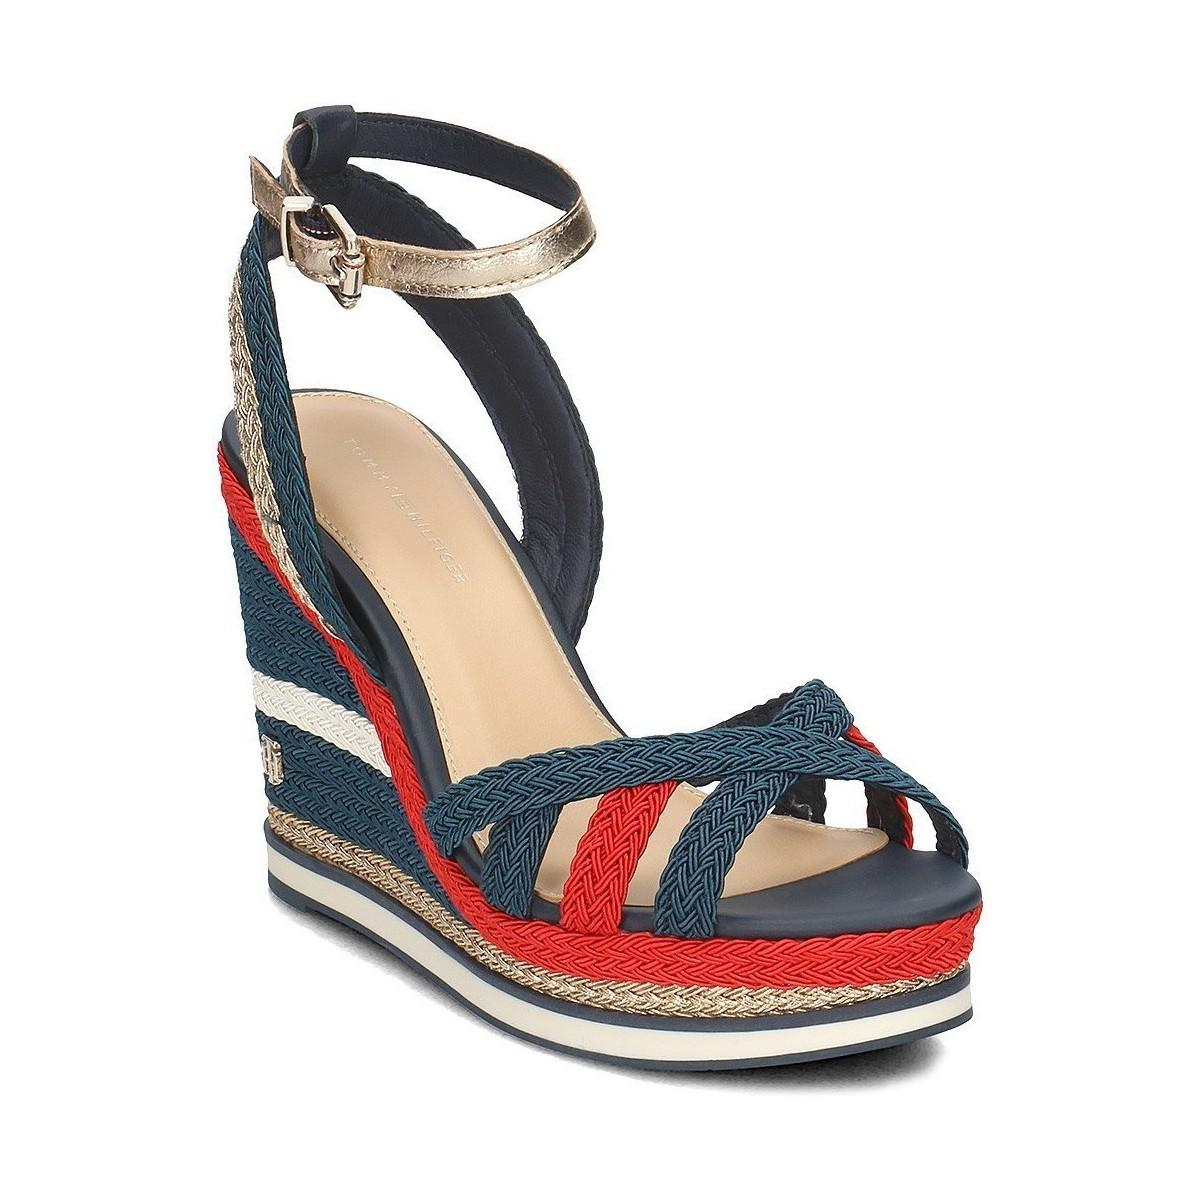 958f51156 Tommy Hilfiger Corporate Wedge Women s Sandals In Black in Black - Lyst